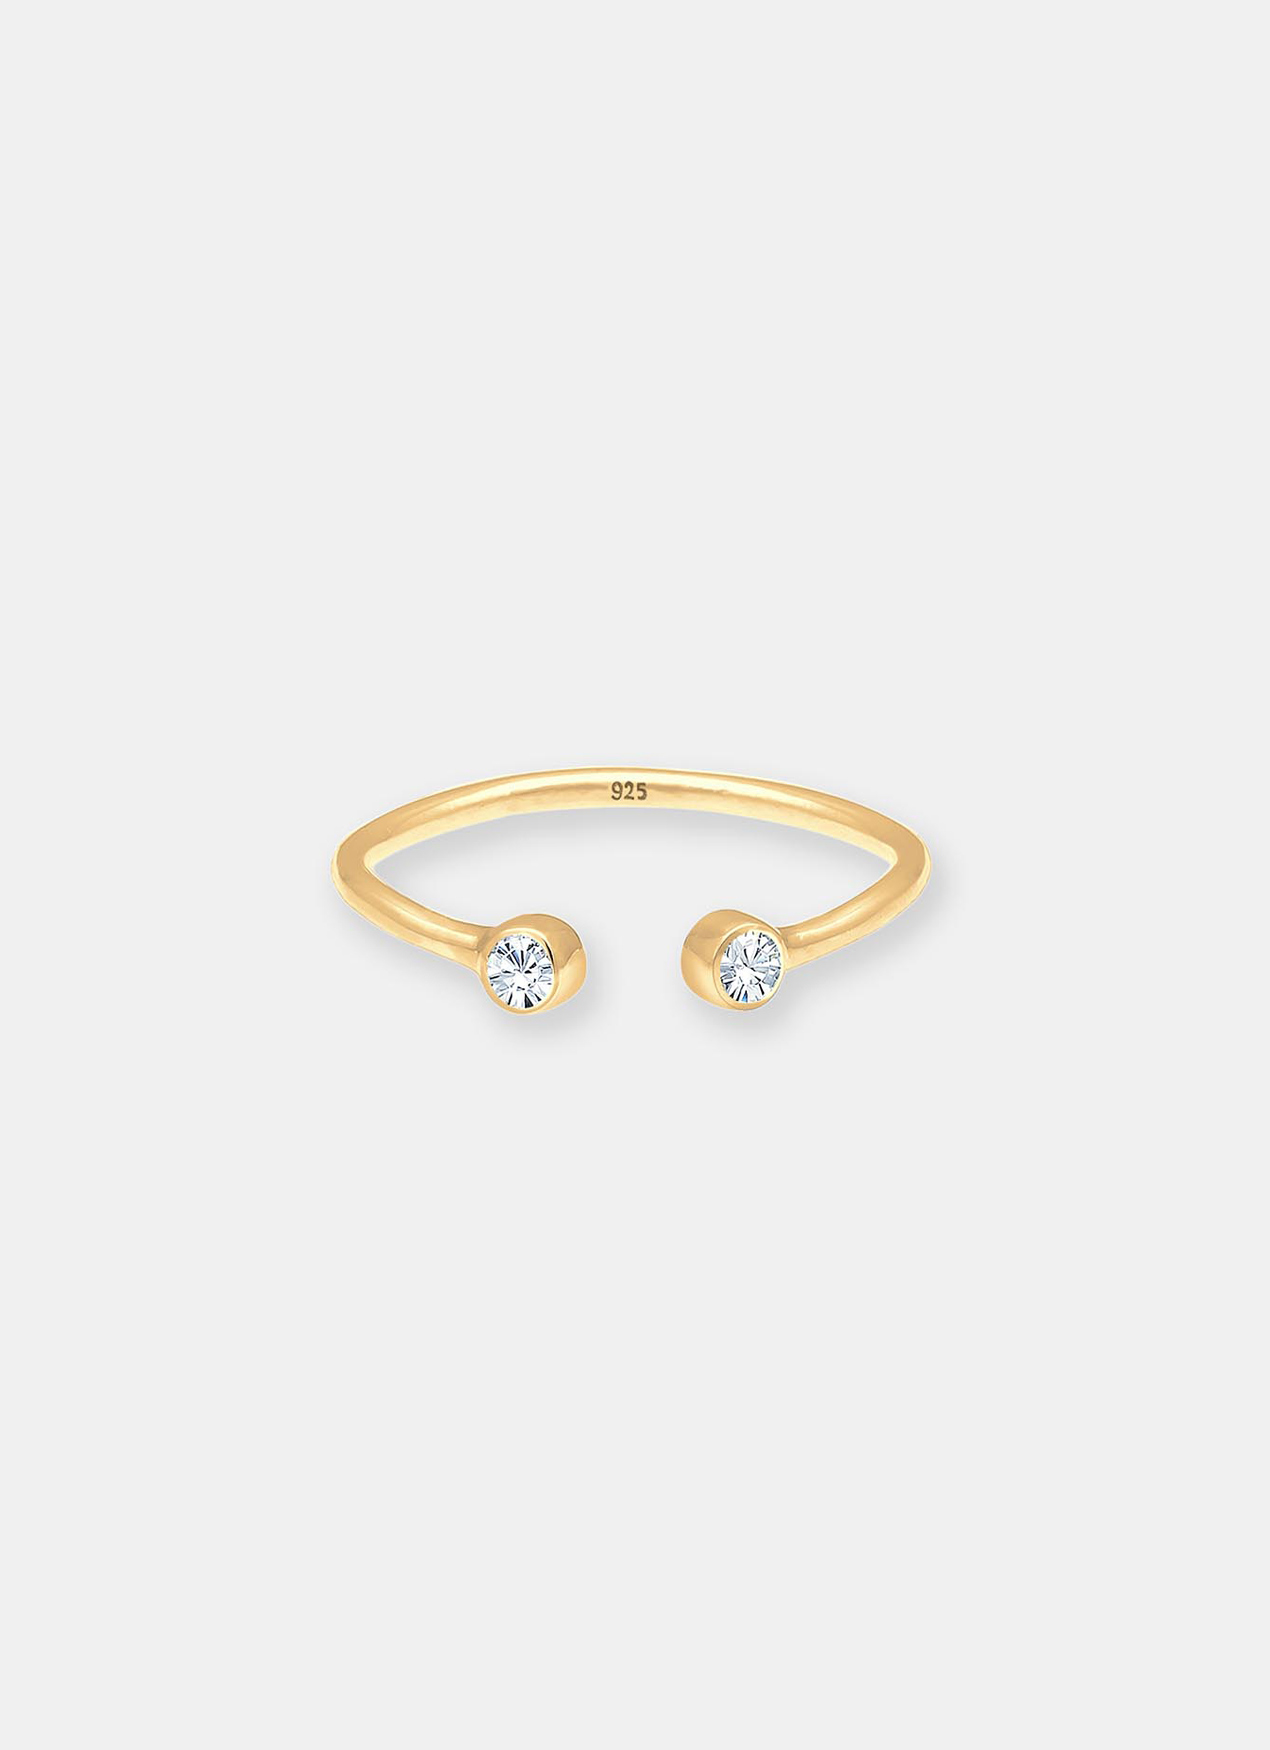 Elli Germany Solitaire Statement Swarovski Crystals Ring - Gold